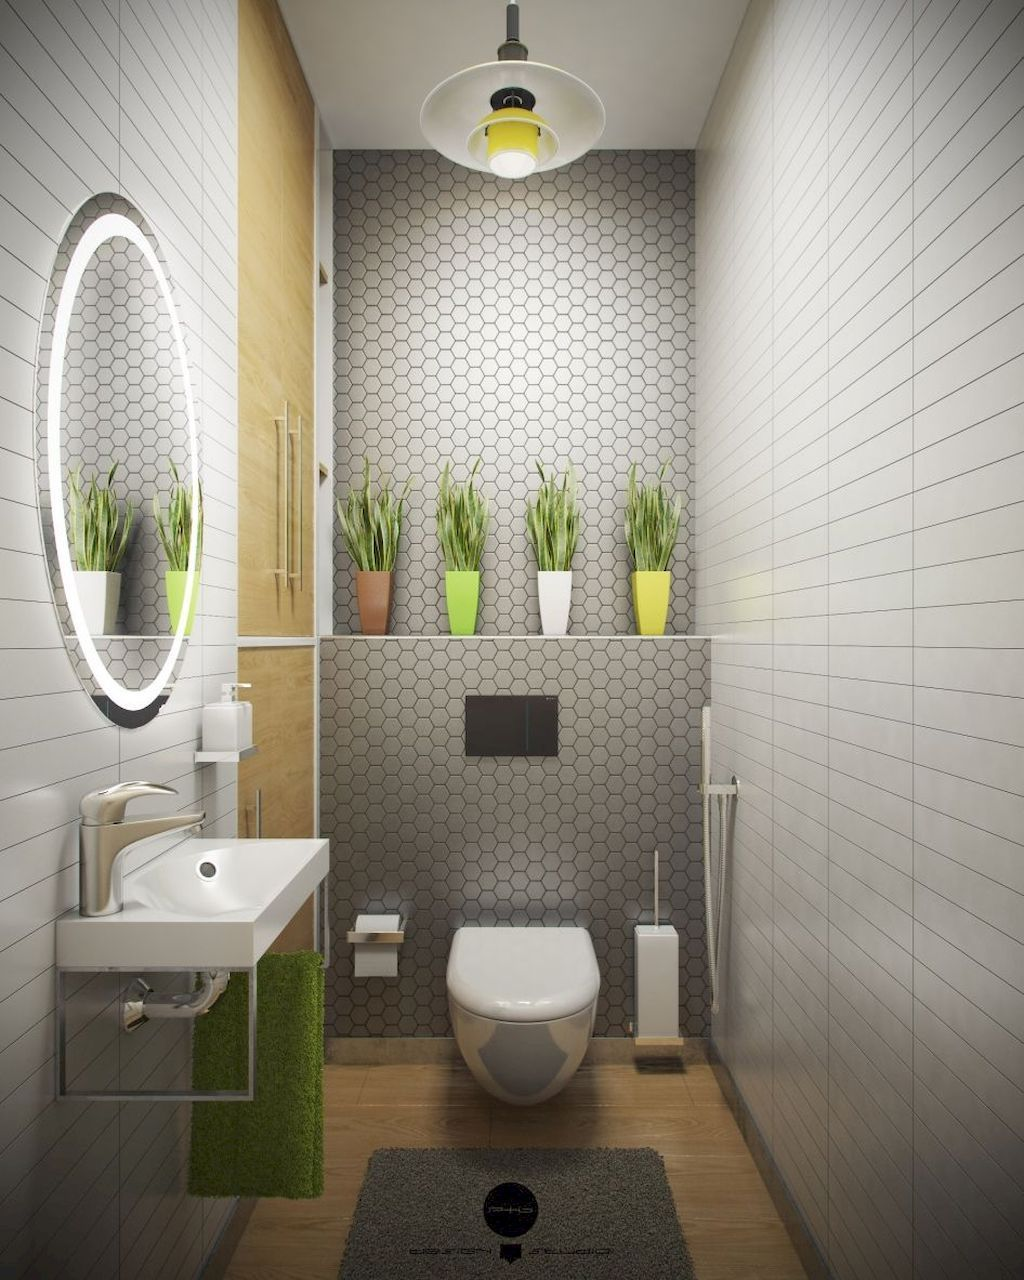 25 Minimalist Small Bathroom Ideas Feel The Big Space With